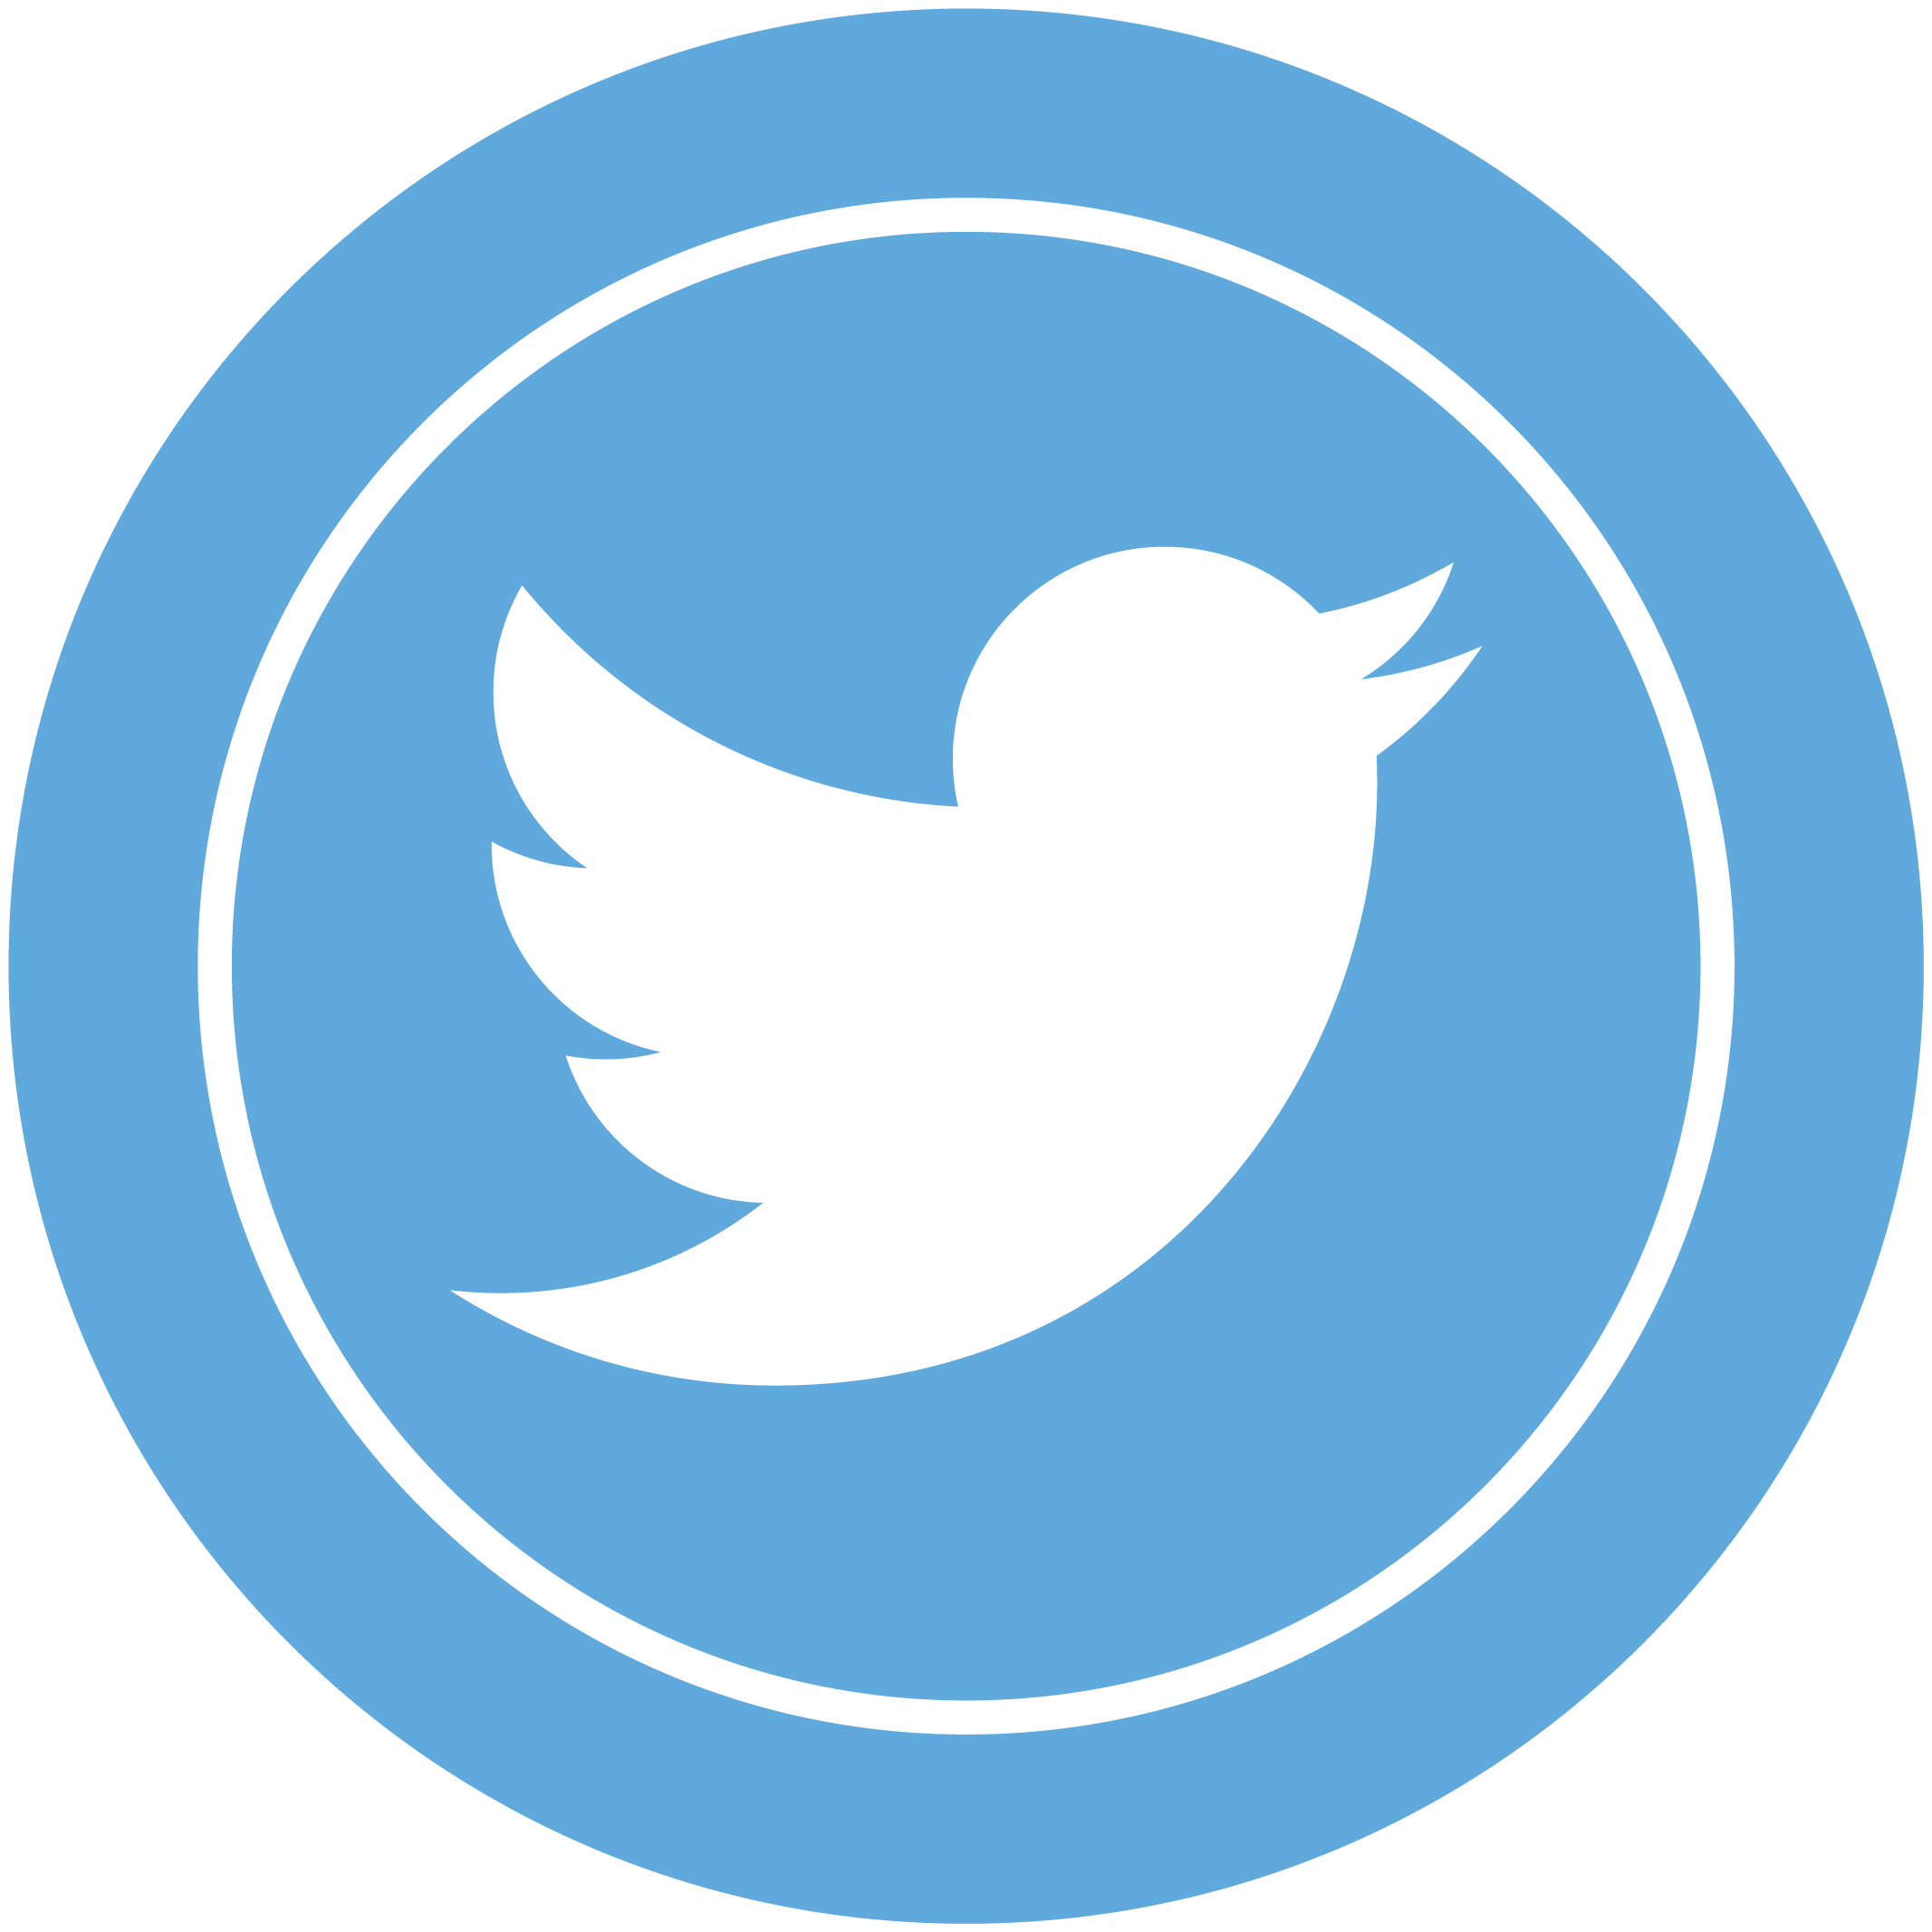 Indianapolis Icons Twitter Airport Computer International Logo PNG Image